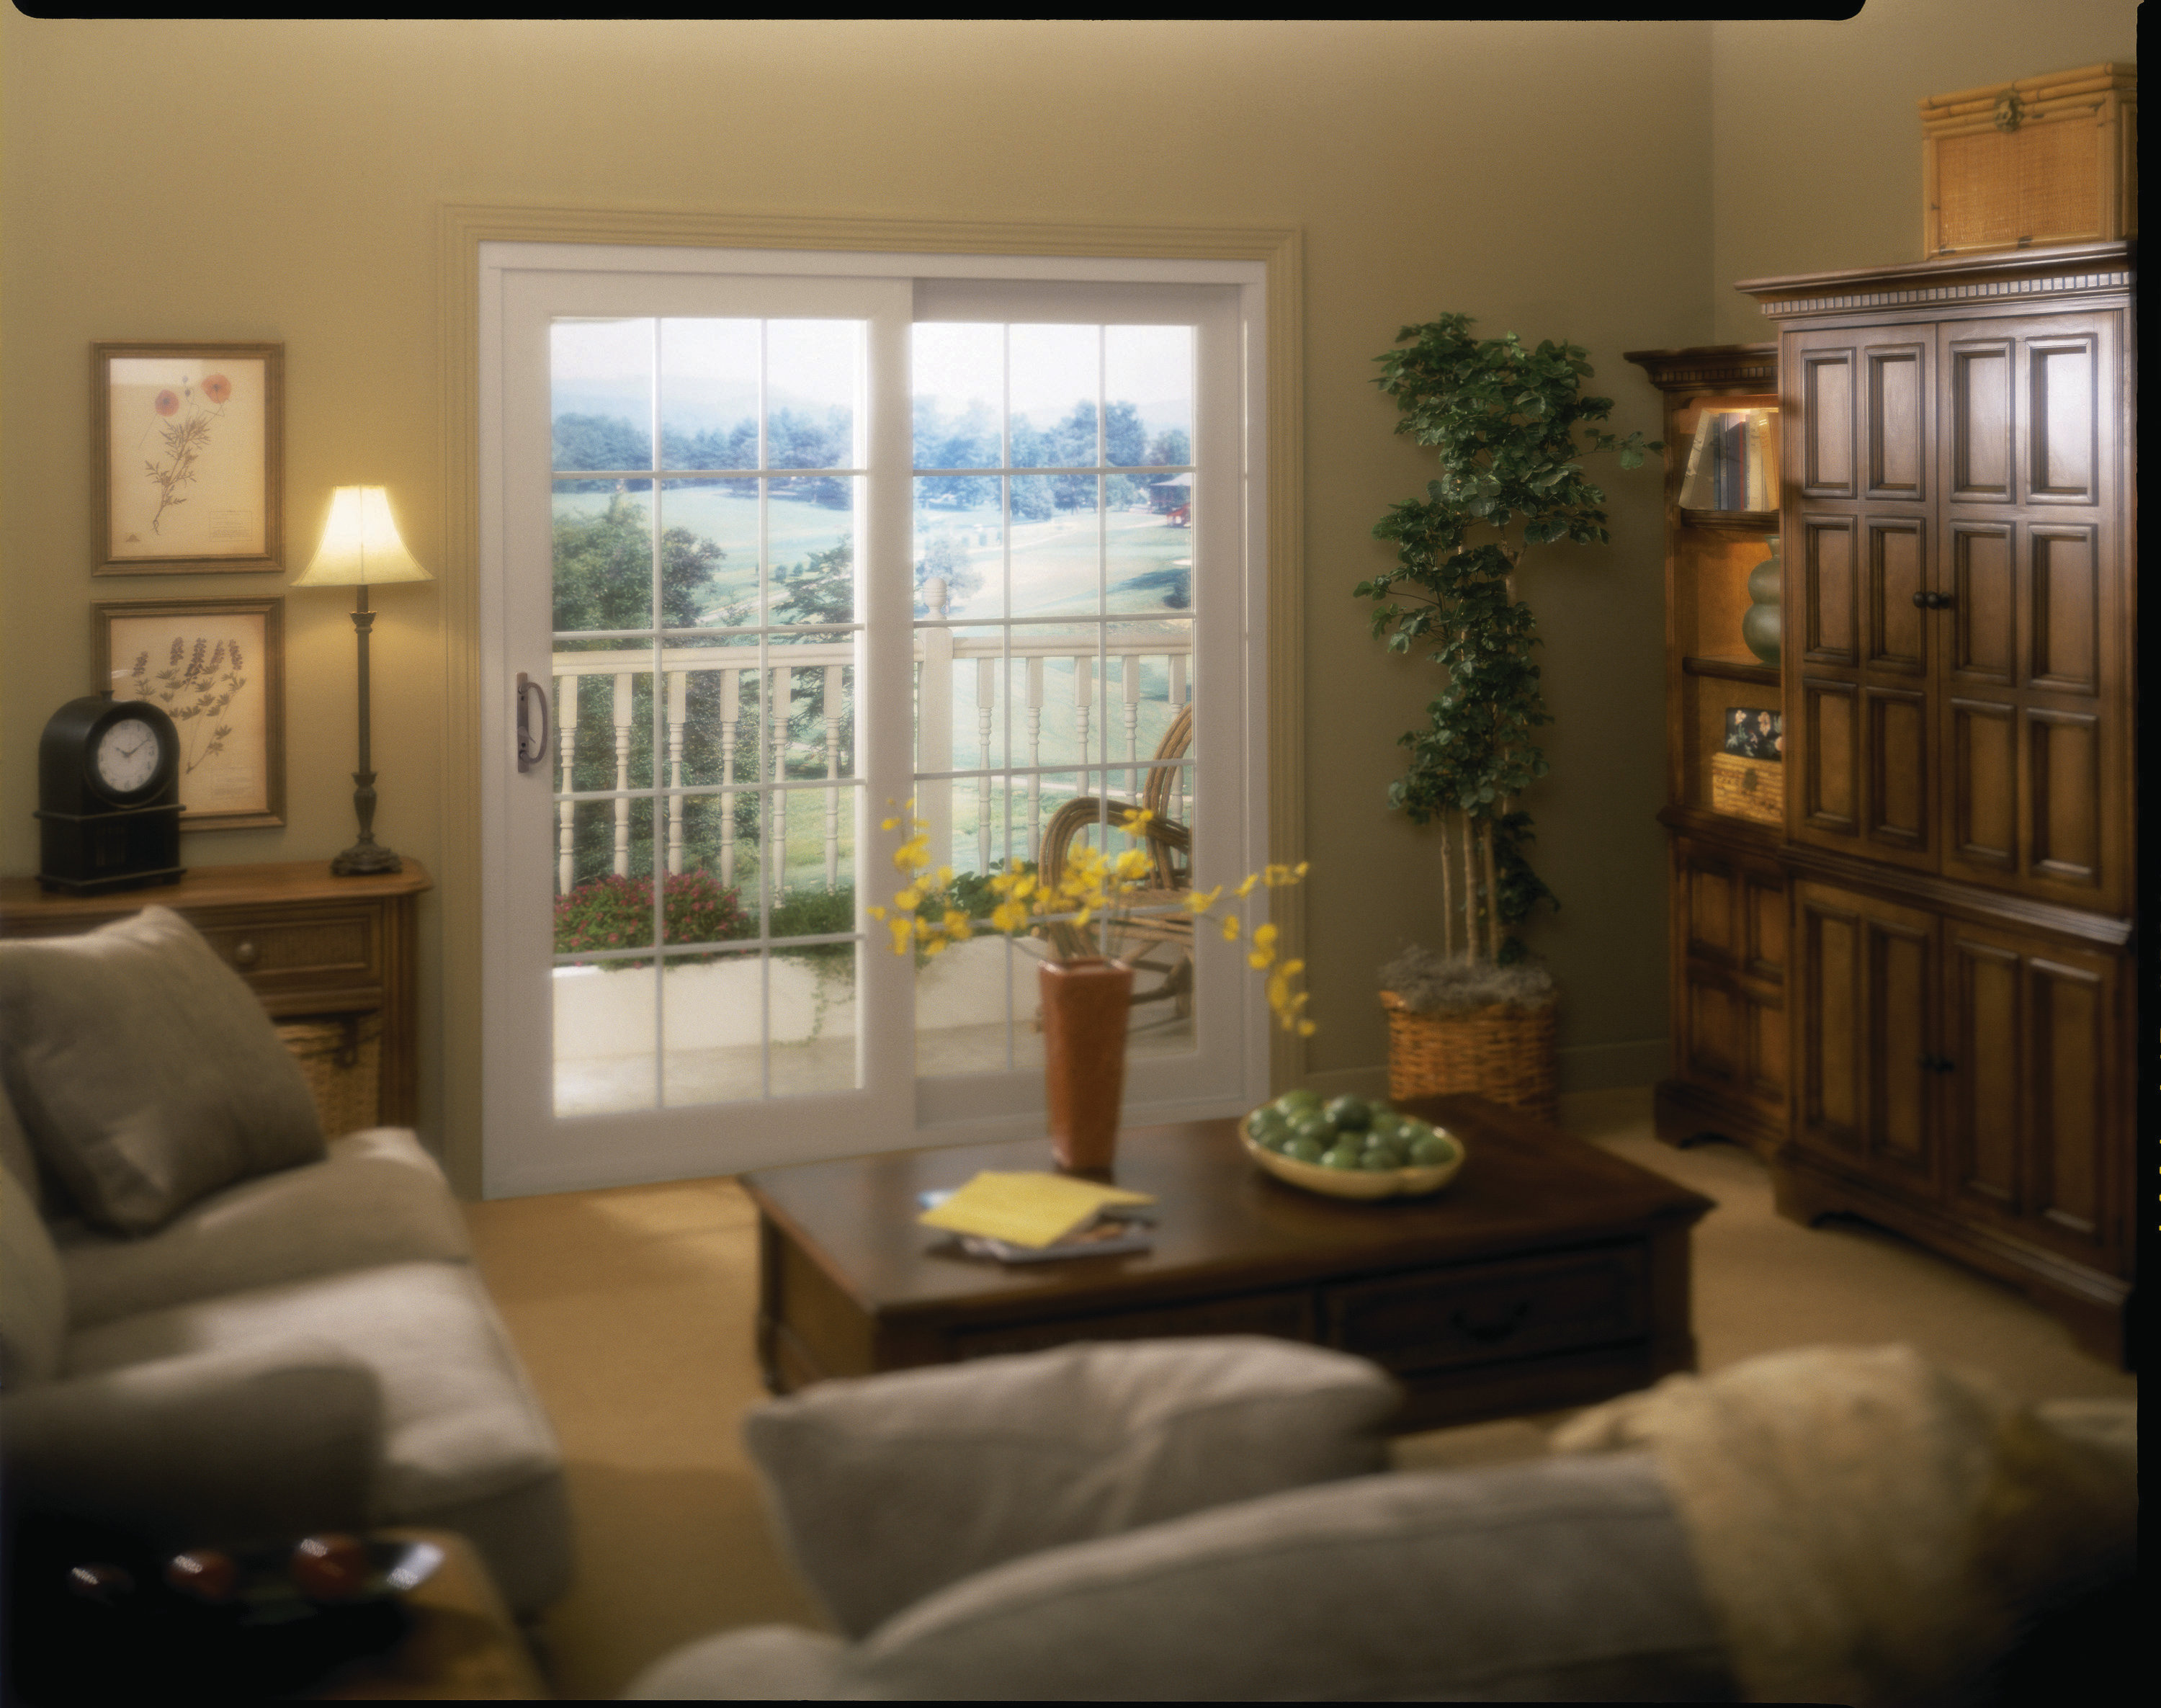 Simonton Reflections 5500 Replacement Patio Doors And Windows   Remodeling    Windows, Doors, Green Products, Green Policy, Economic Development, ...